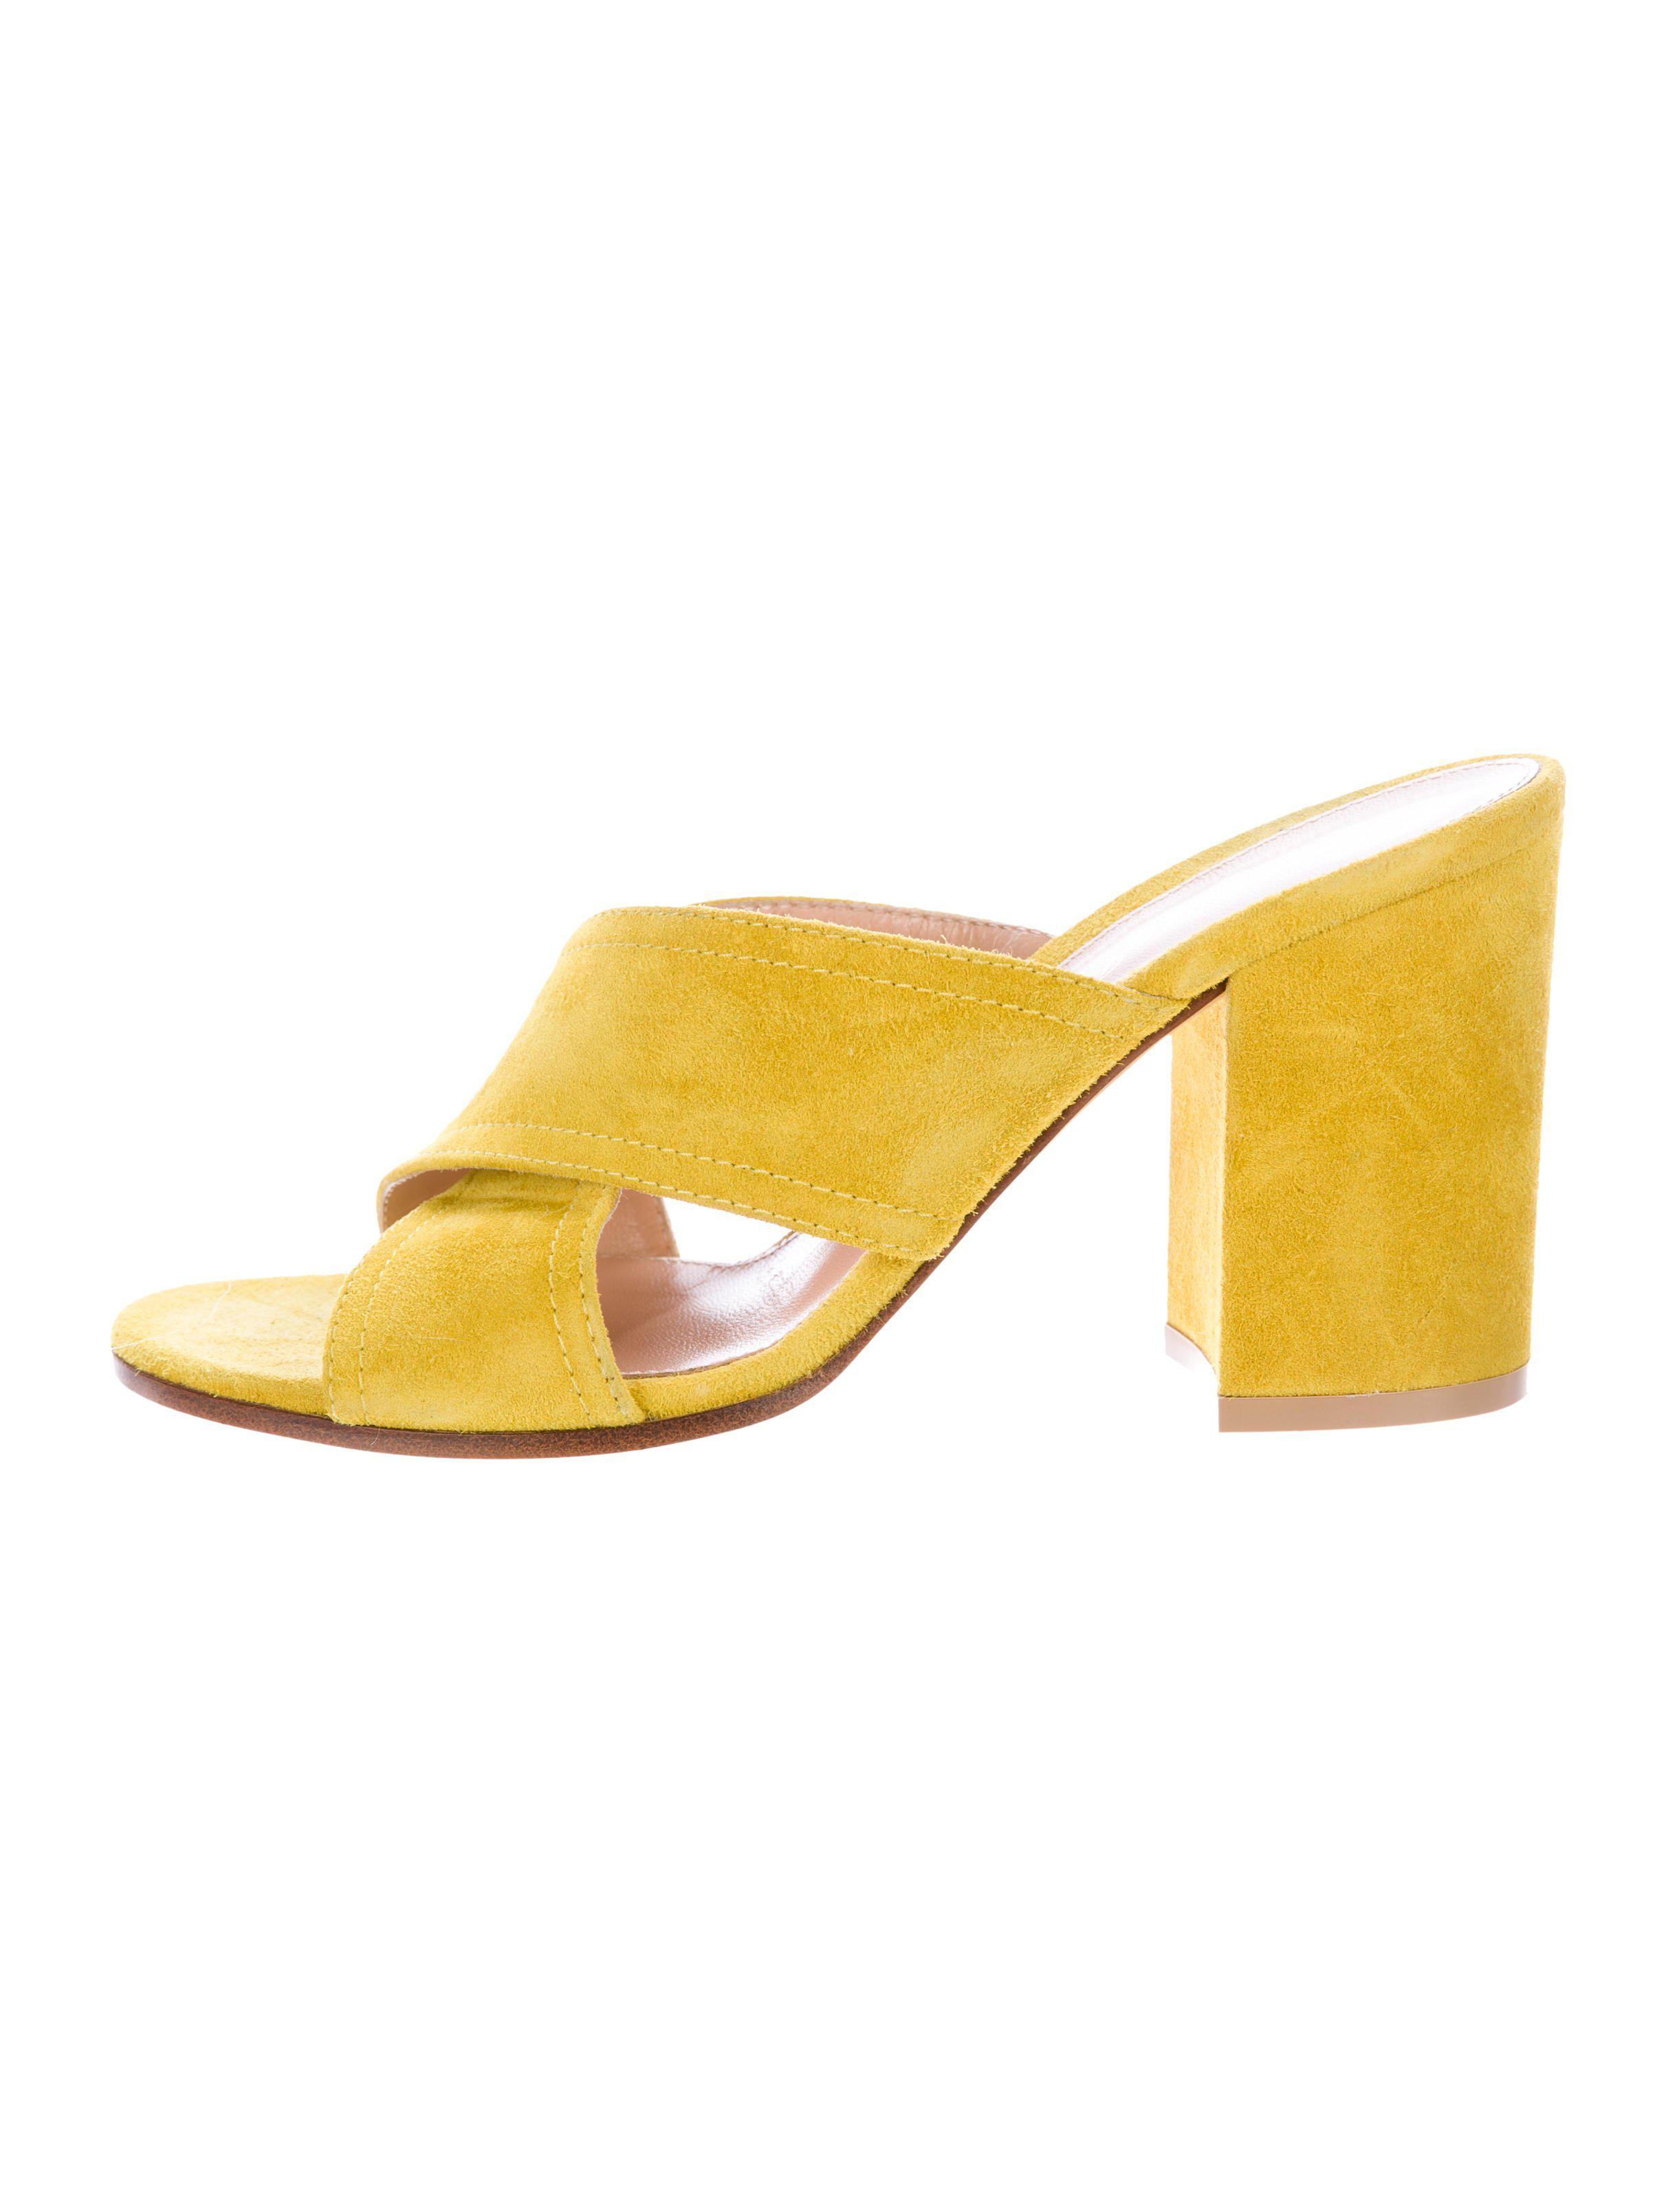 low price online fashionable cheap online Gianvito Rossi Crossover Slide Sandals cheap real finishline clearance outlet OBN4QU